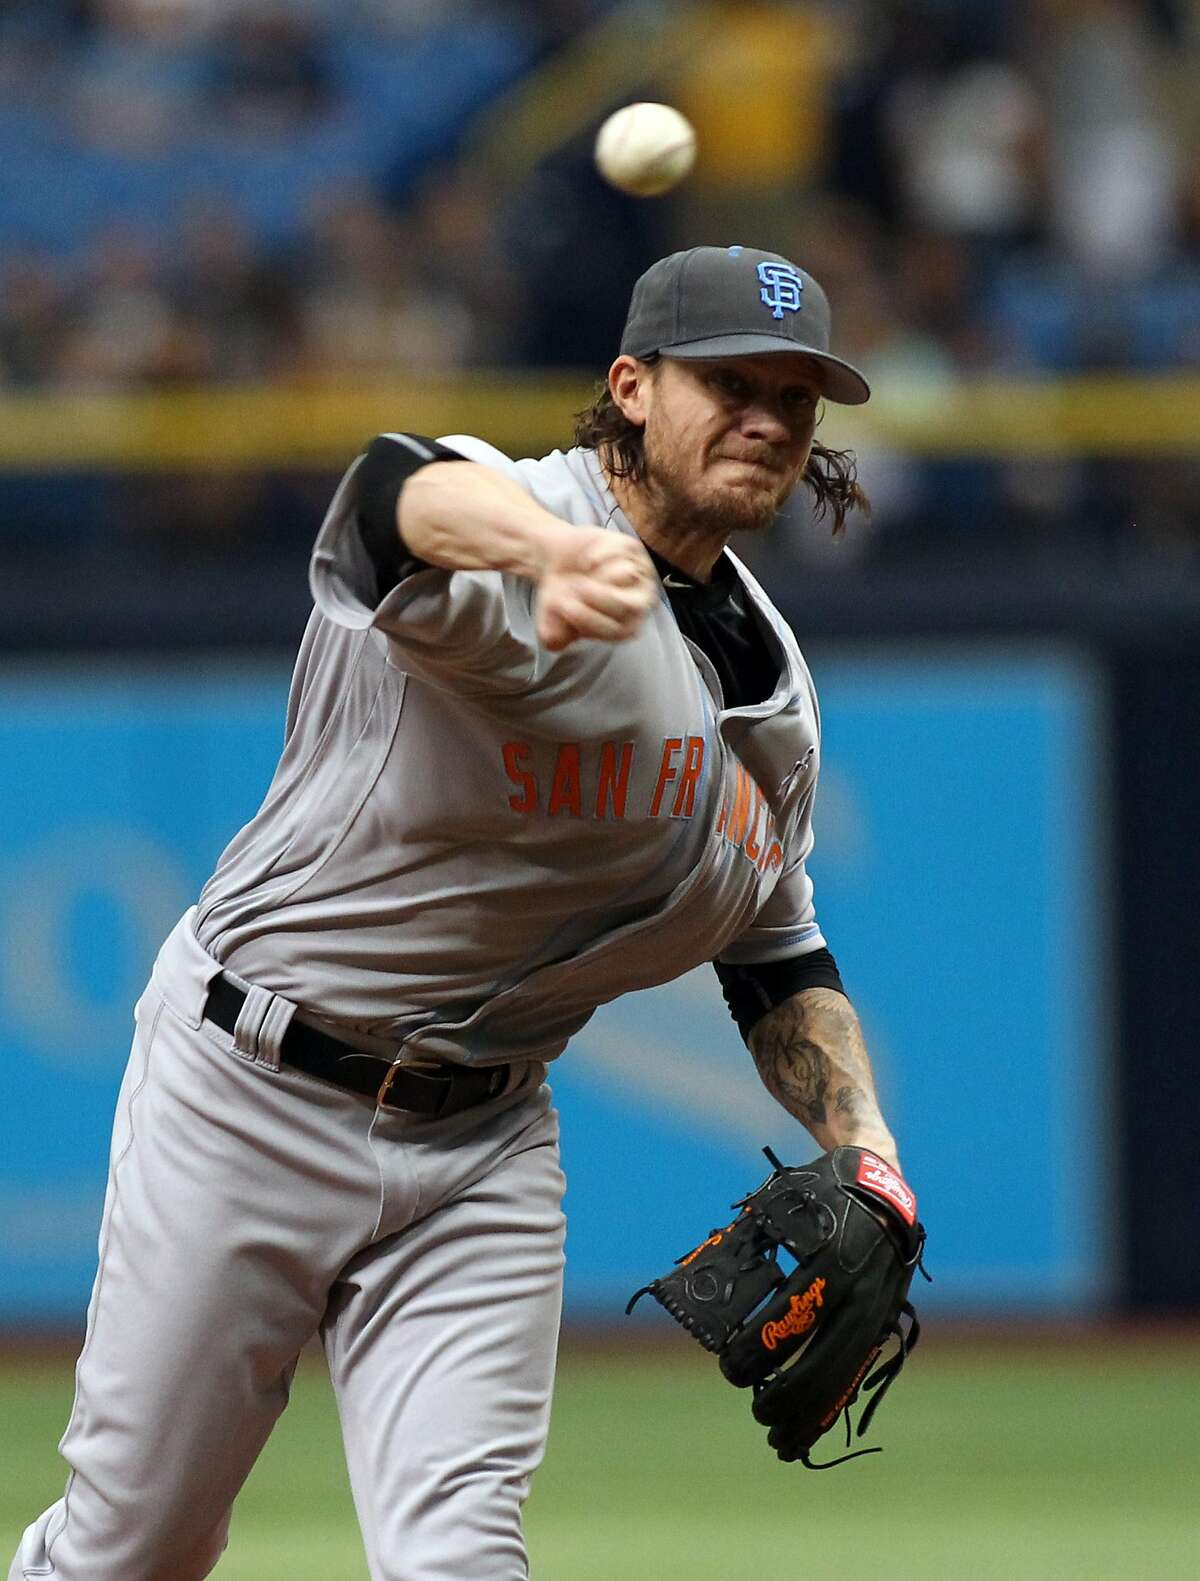 ST. PETERSBURG, FL - JUNE 19: Jake Peavy #22 of the San Francisco Giants pitches during the first inning of a game against the Tampa Bay Rays on June 19, 2016 at Tropicana Field in St. Petersburg, Florida. (Photo by Brian Blanco/Getty Images)